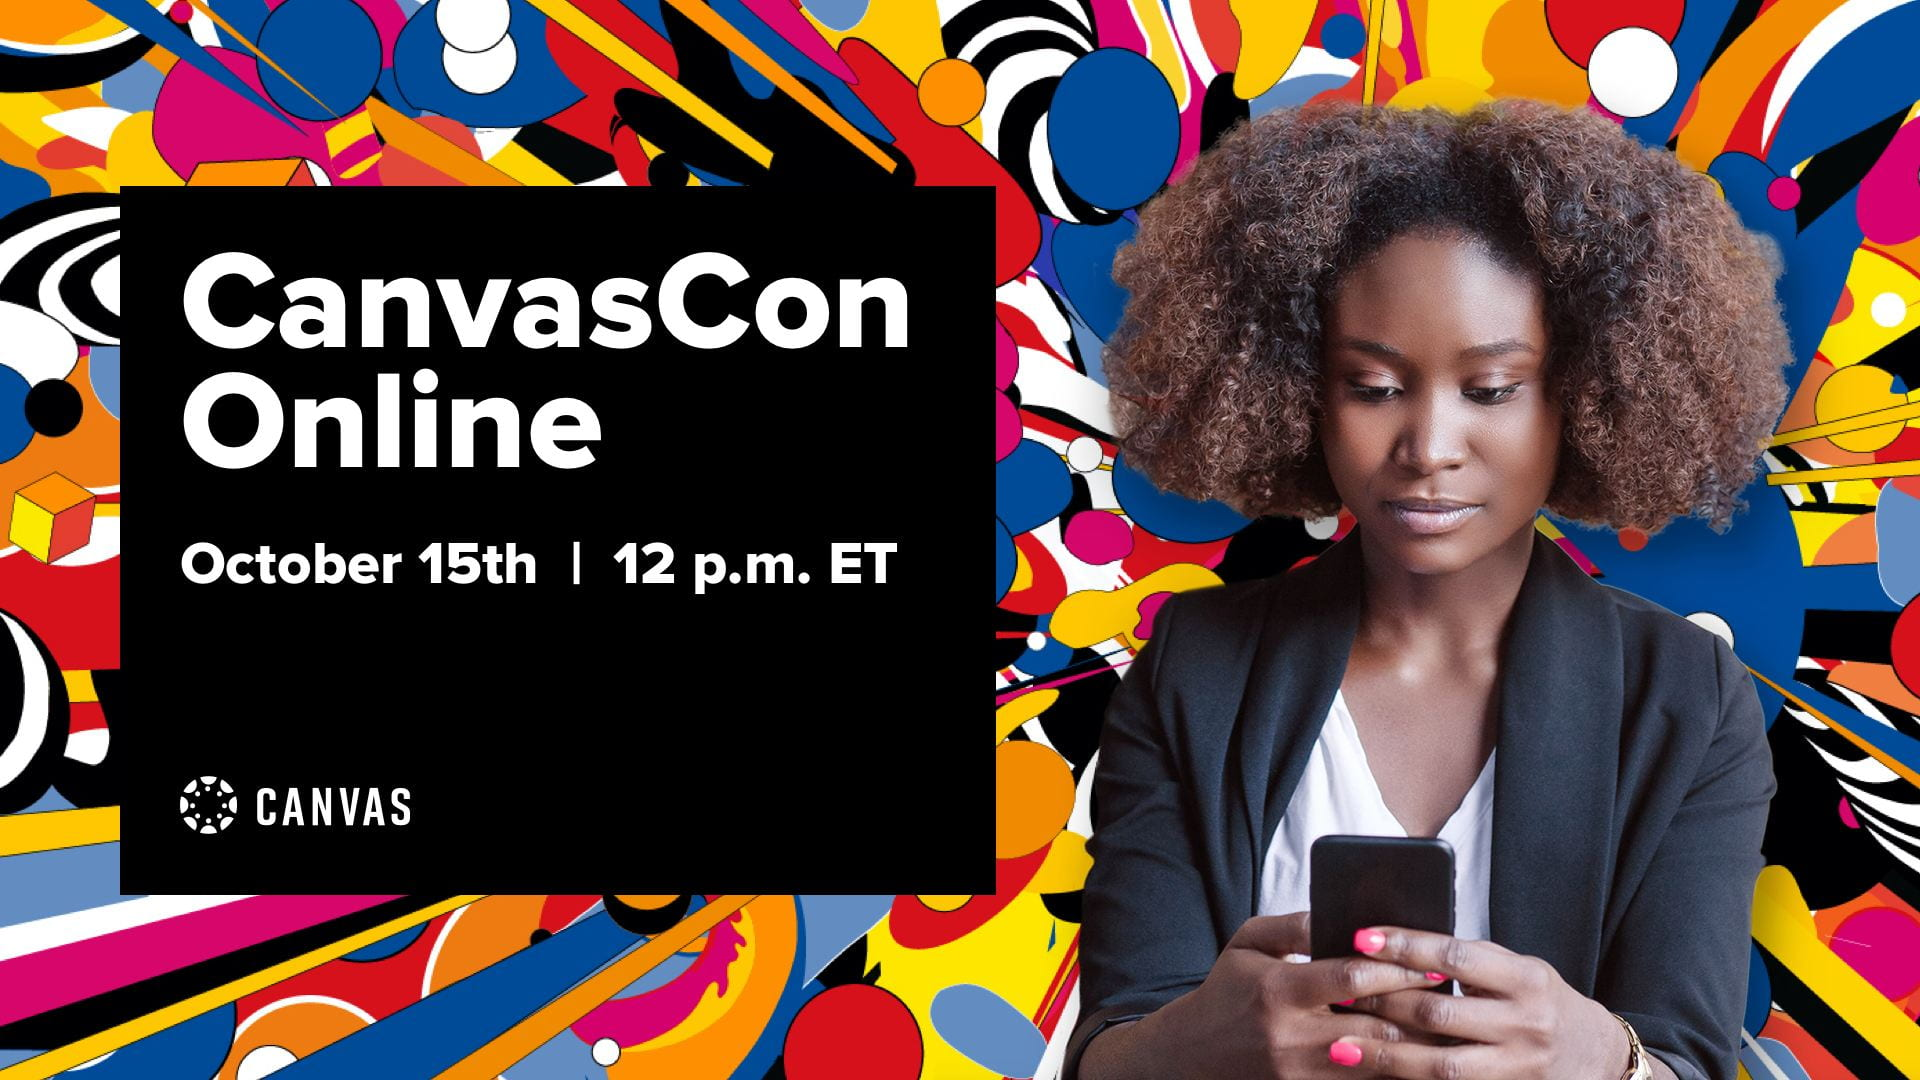 Banner showing CanvasCon, text on images says CanvasCon Online, October 15th at 12pm E.T